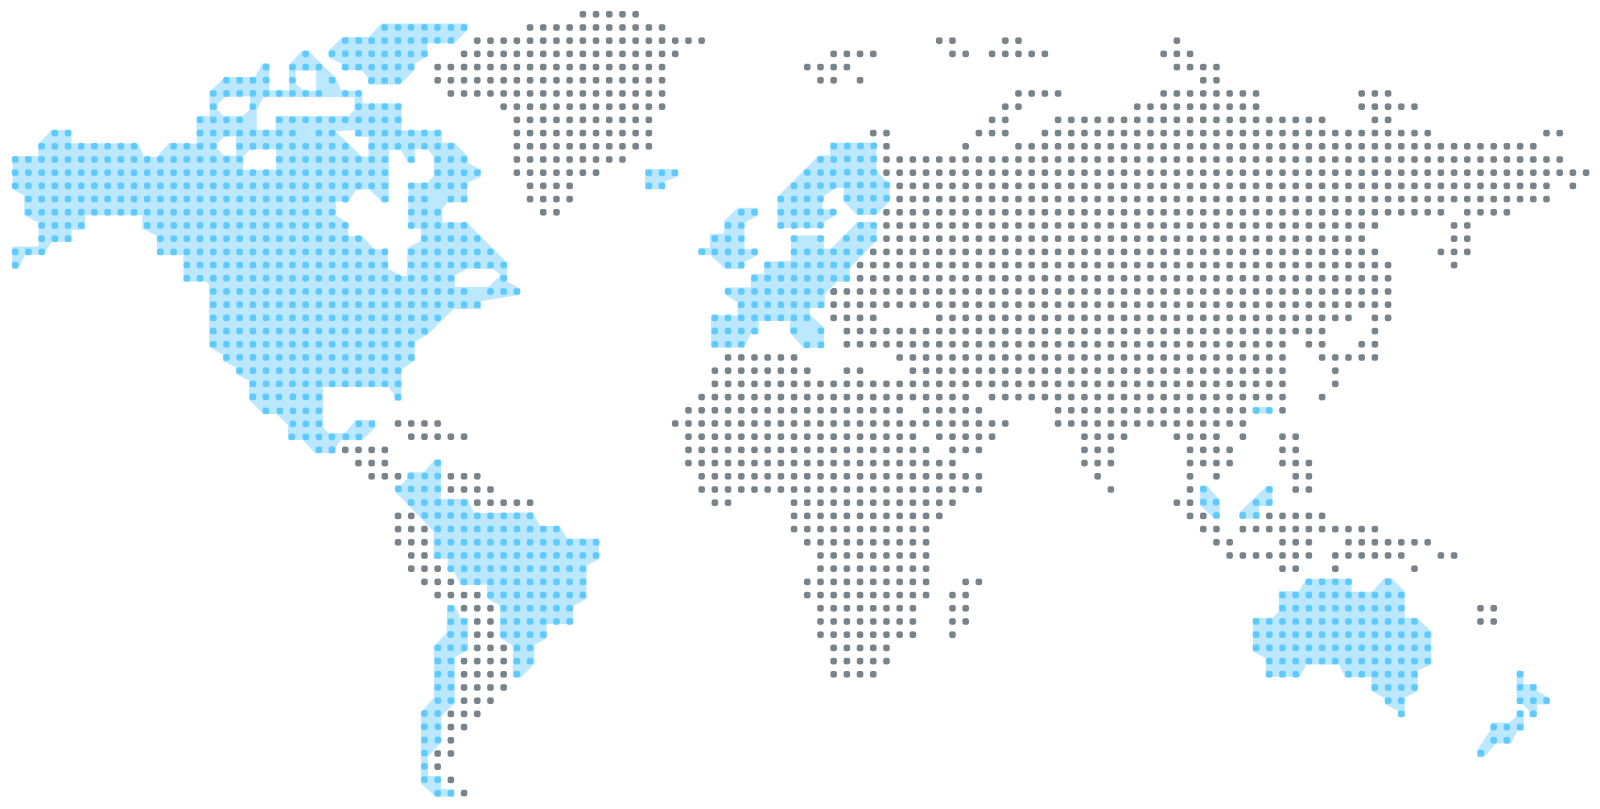 World-Map-PNG-Image-HD.png